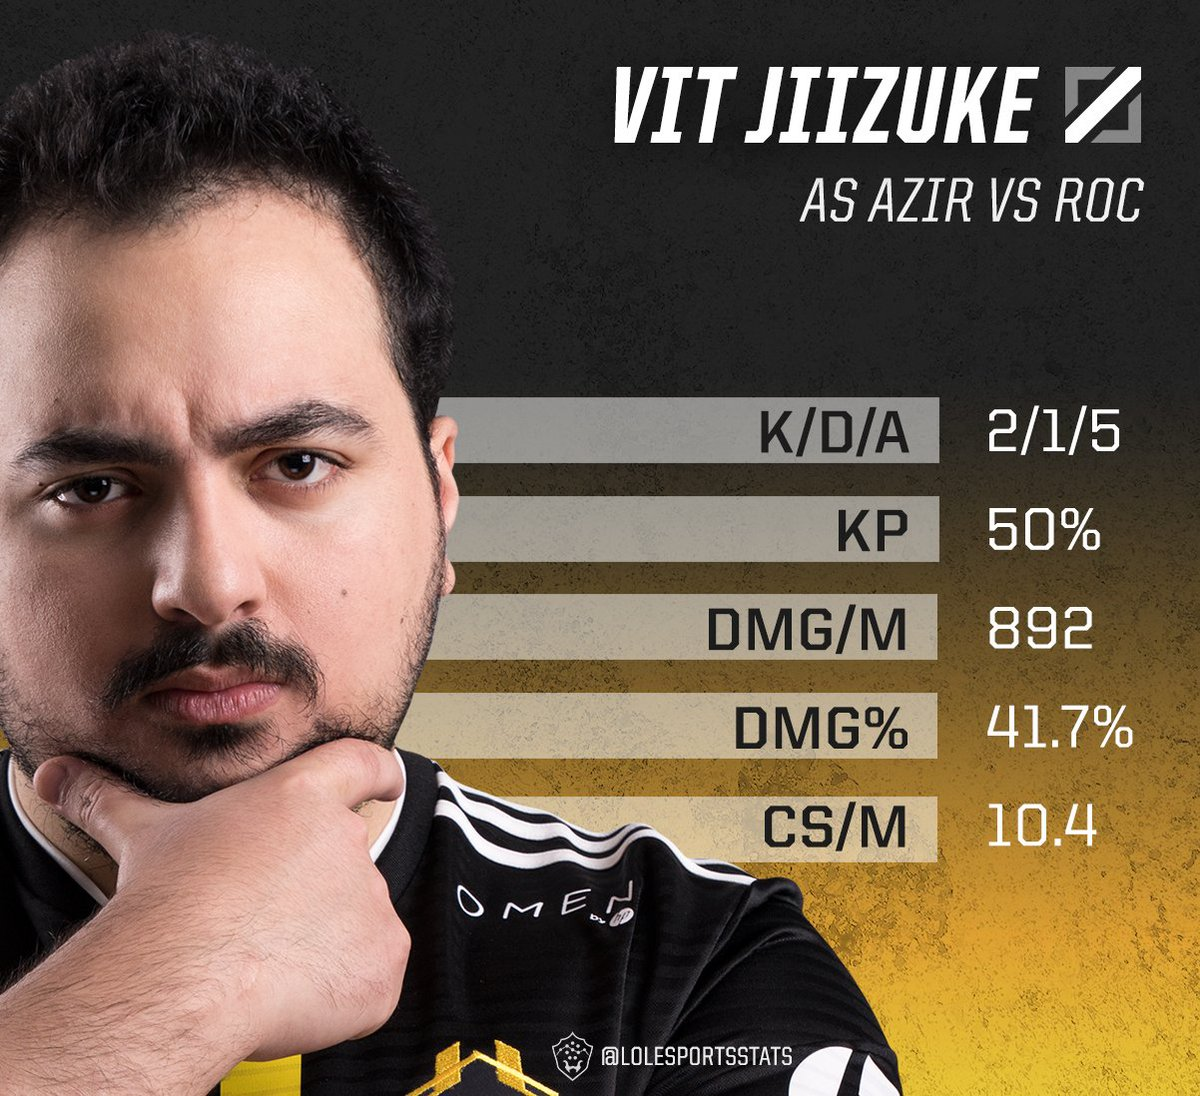 RT @LoLEsportsStats: In the longest game this split, @JiizukeLoL's Azir was able to dish out a lot of damage. #EULCS https://t.co/2UBV3A6hN4